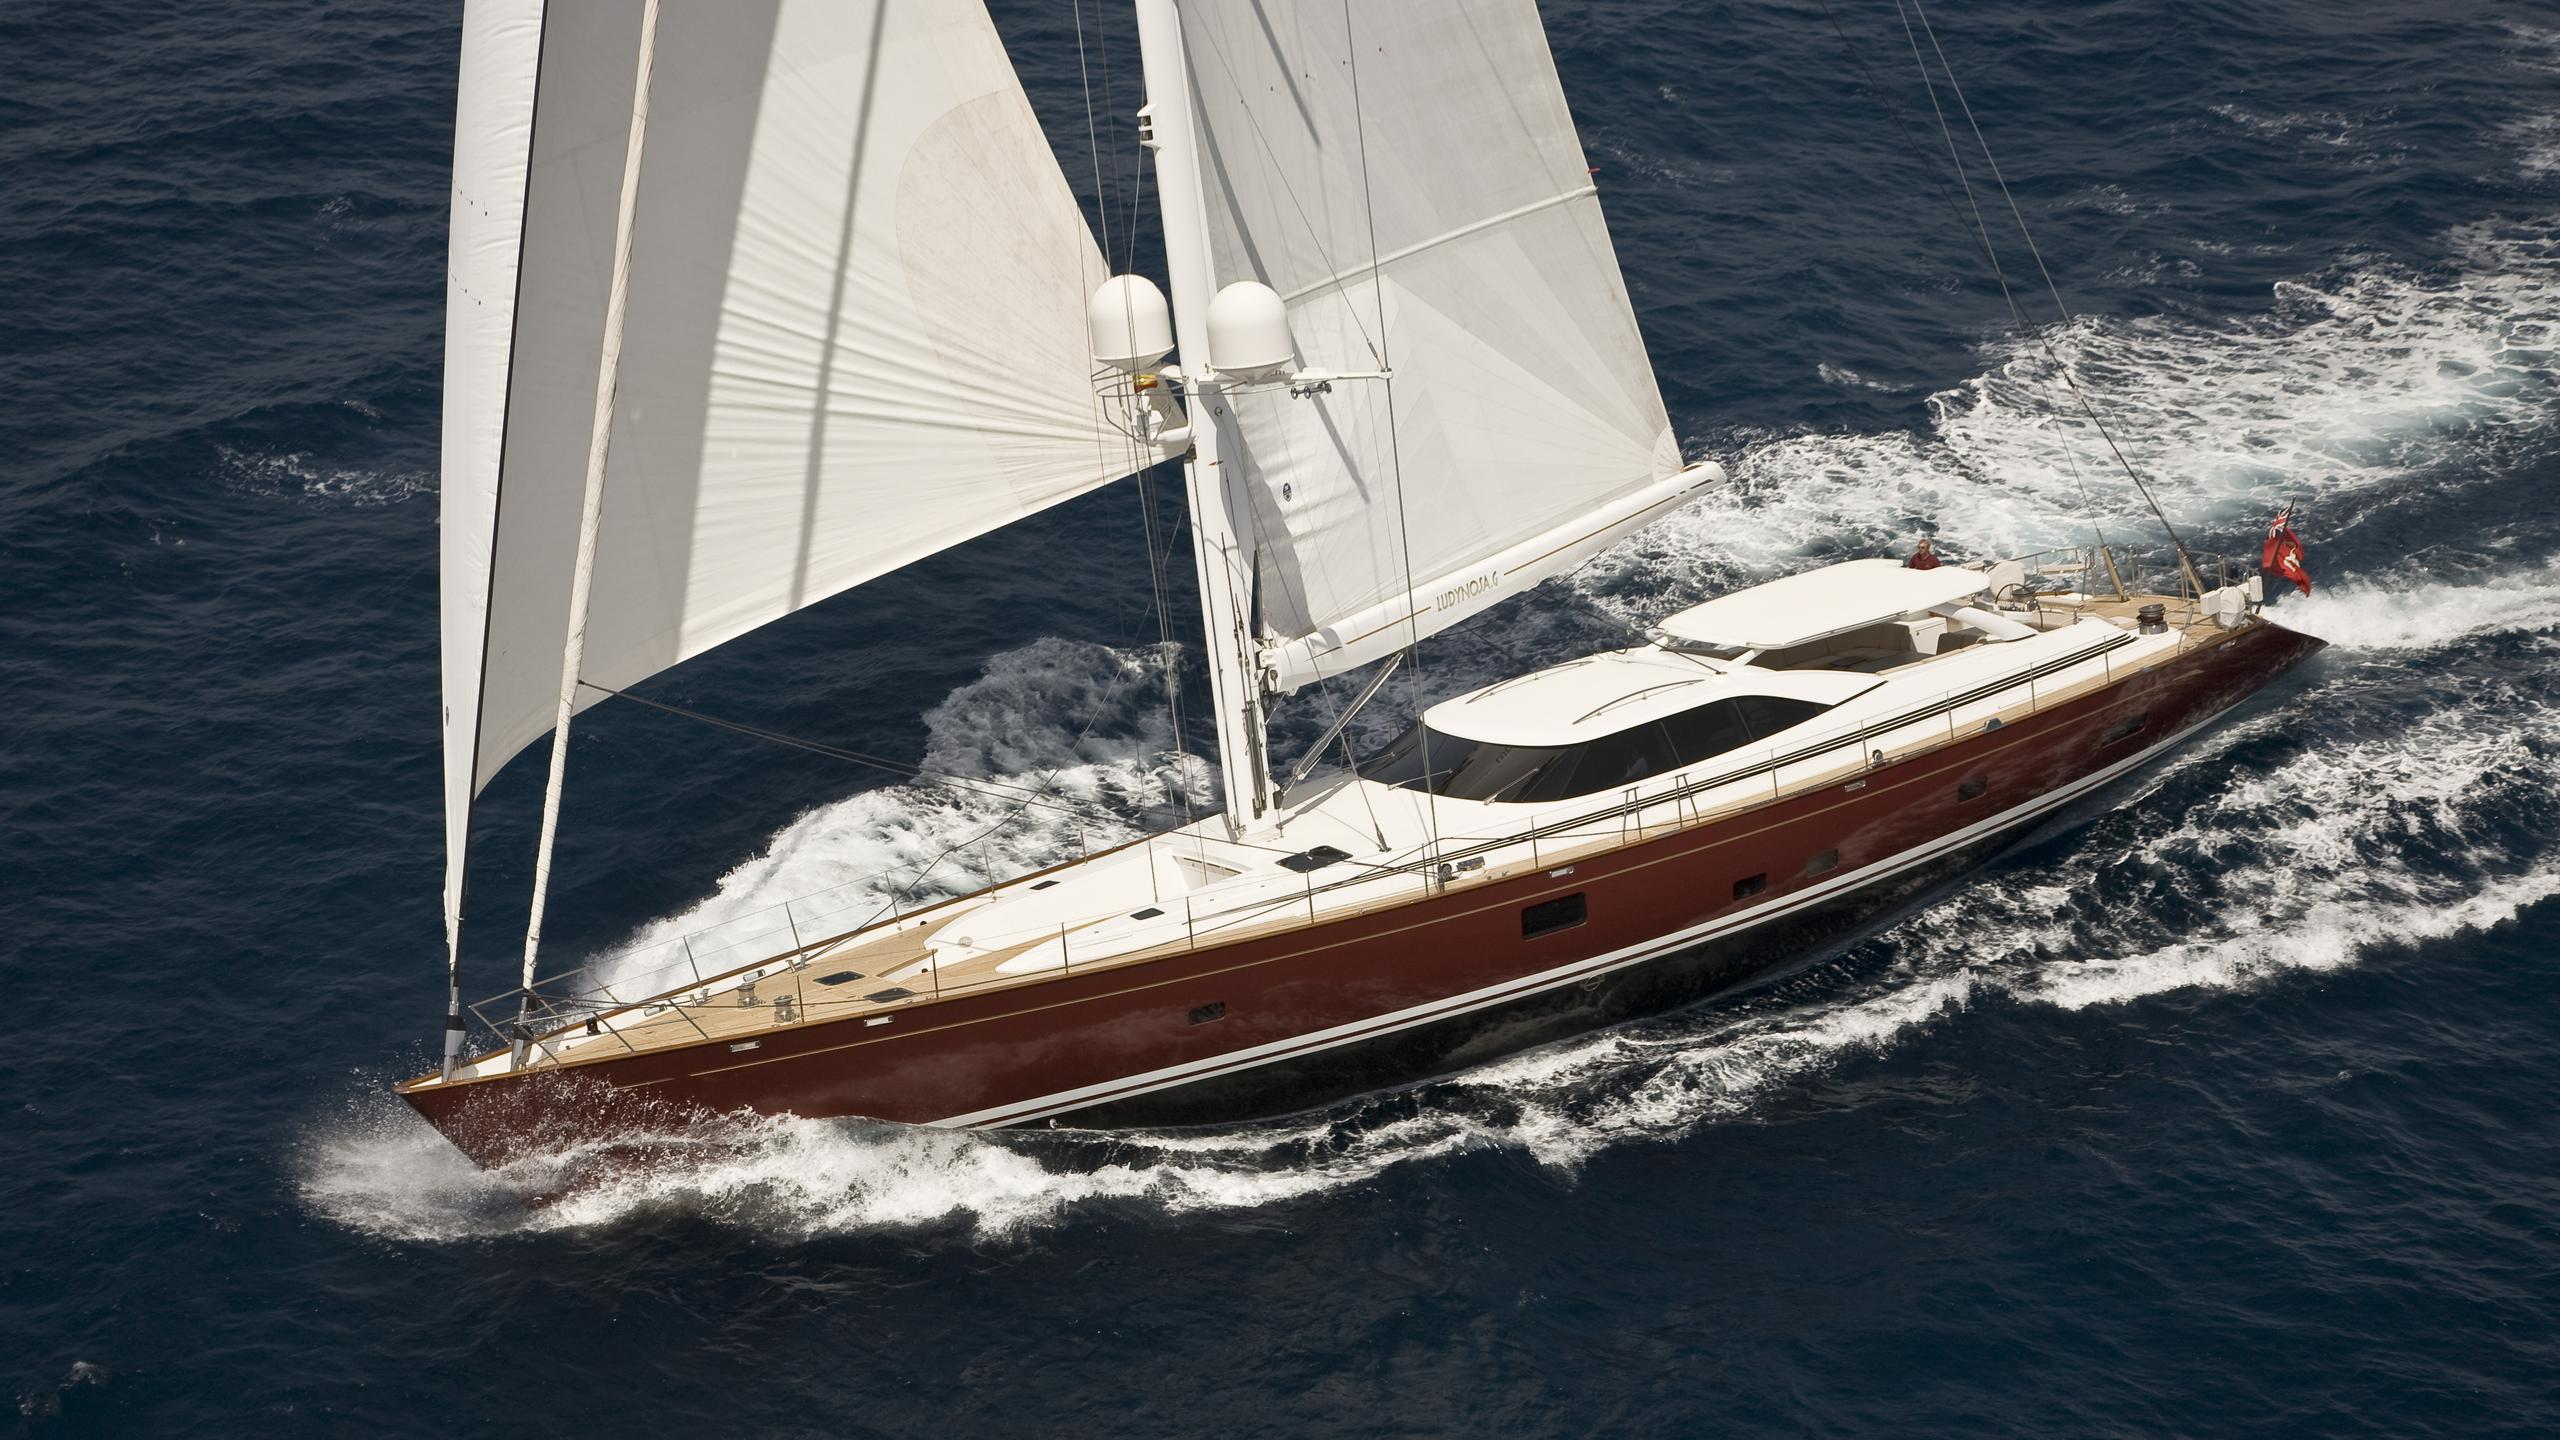 ludynosa-g-yacht-for-sale-profile